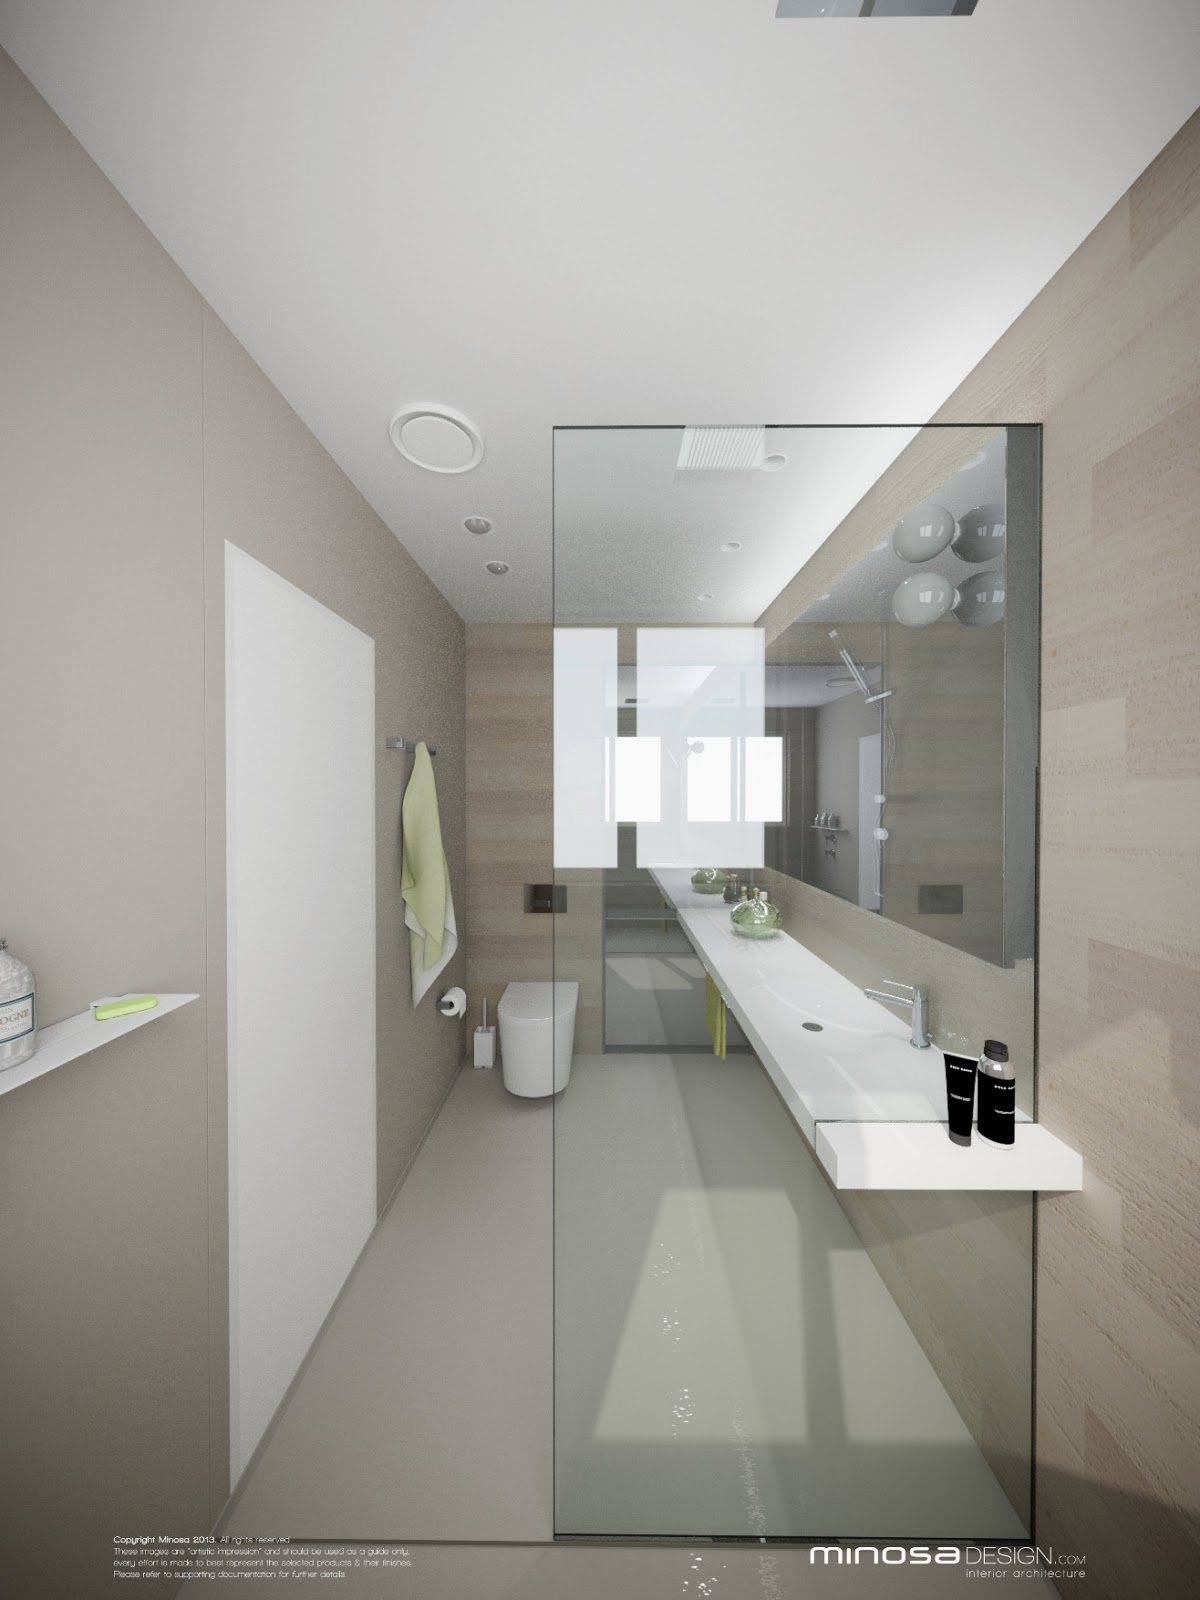 Minosa bringing sexy back the modern bathroom for Modern bathroom design small